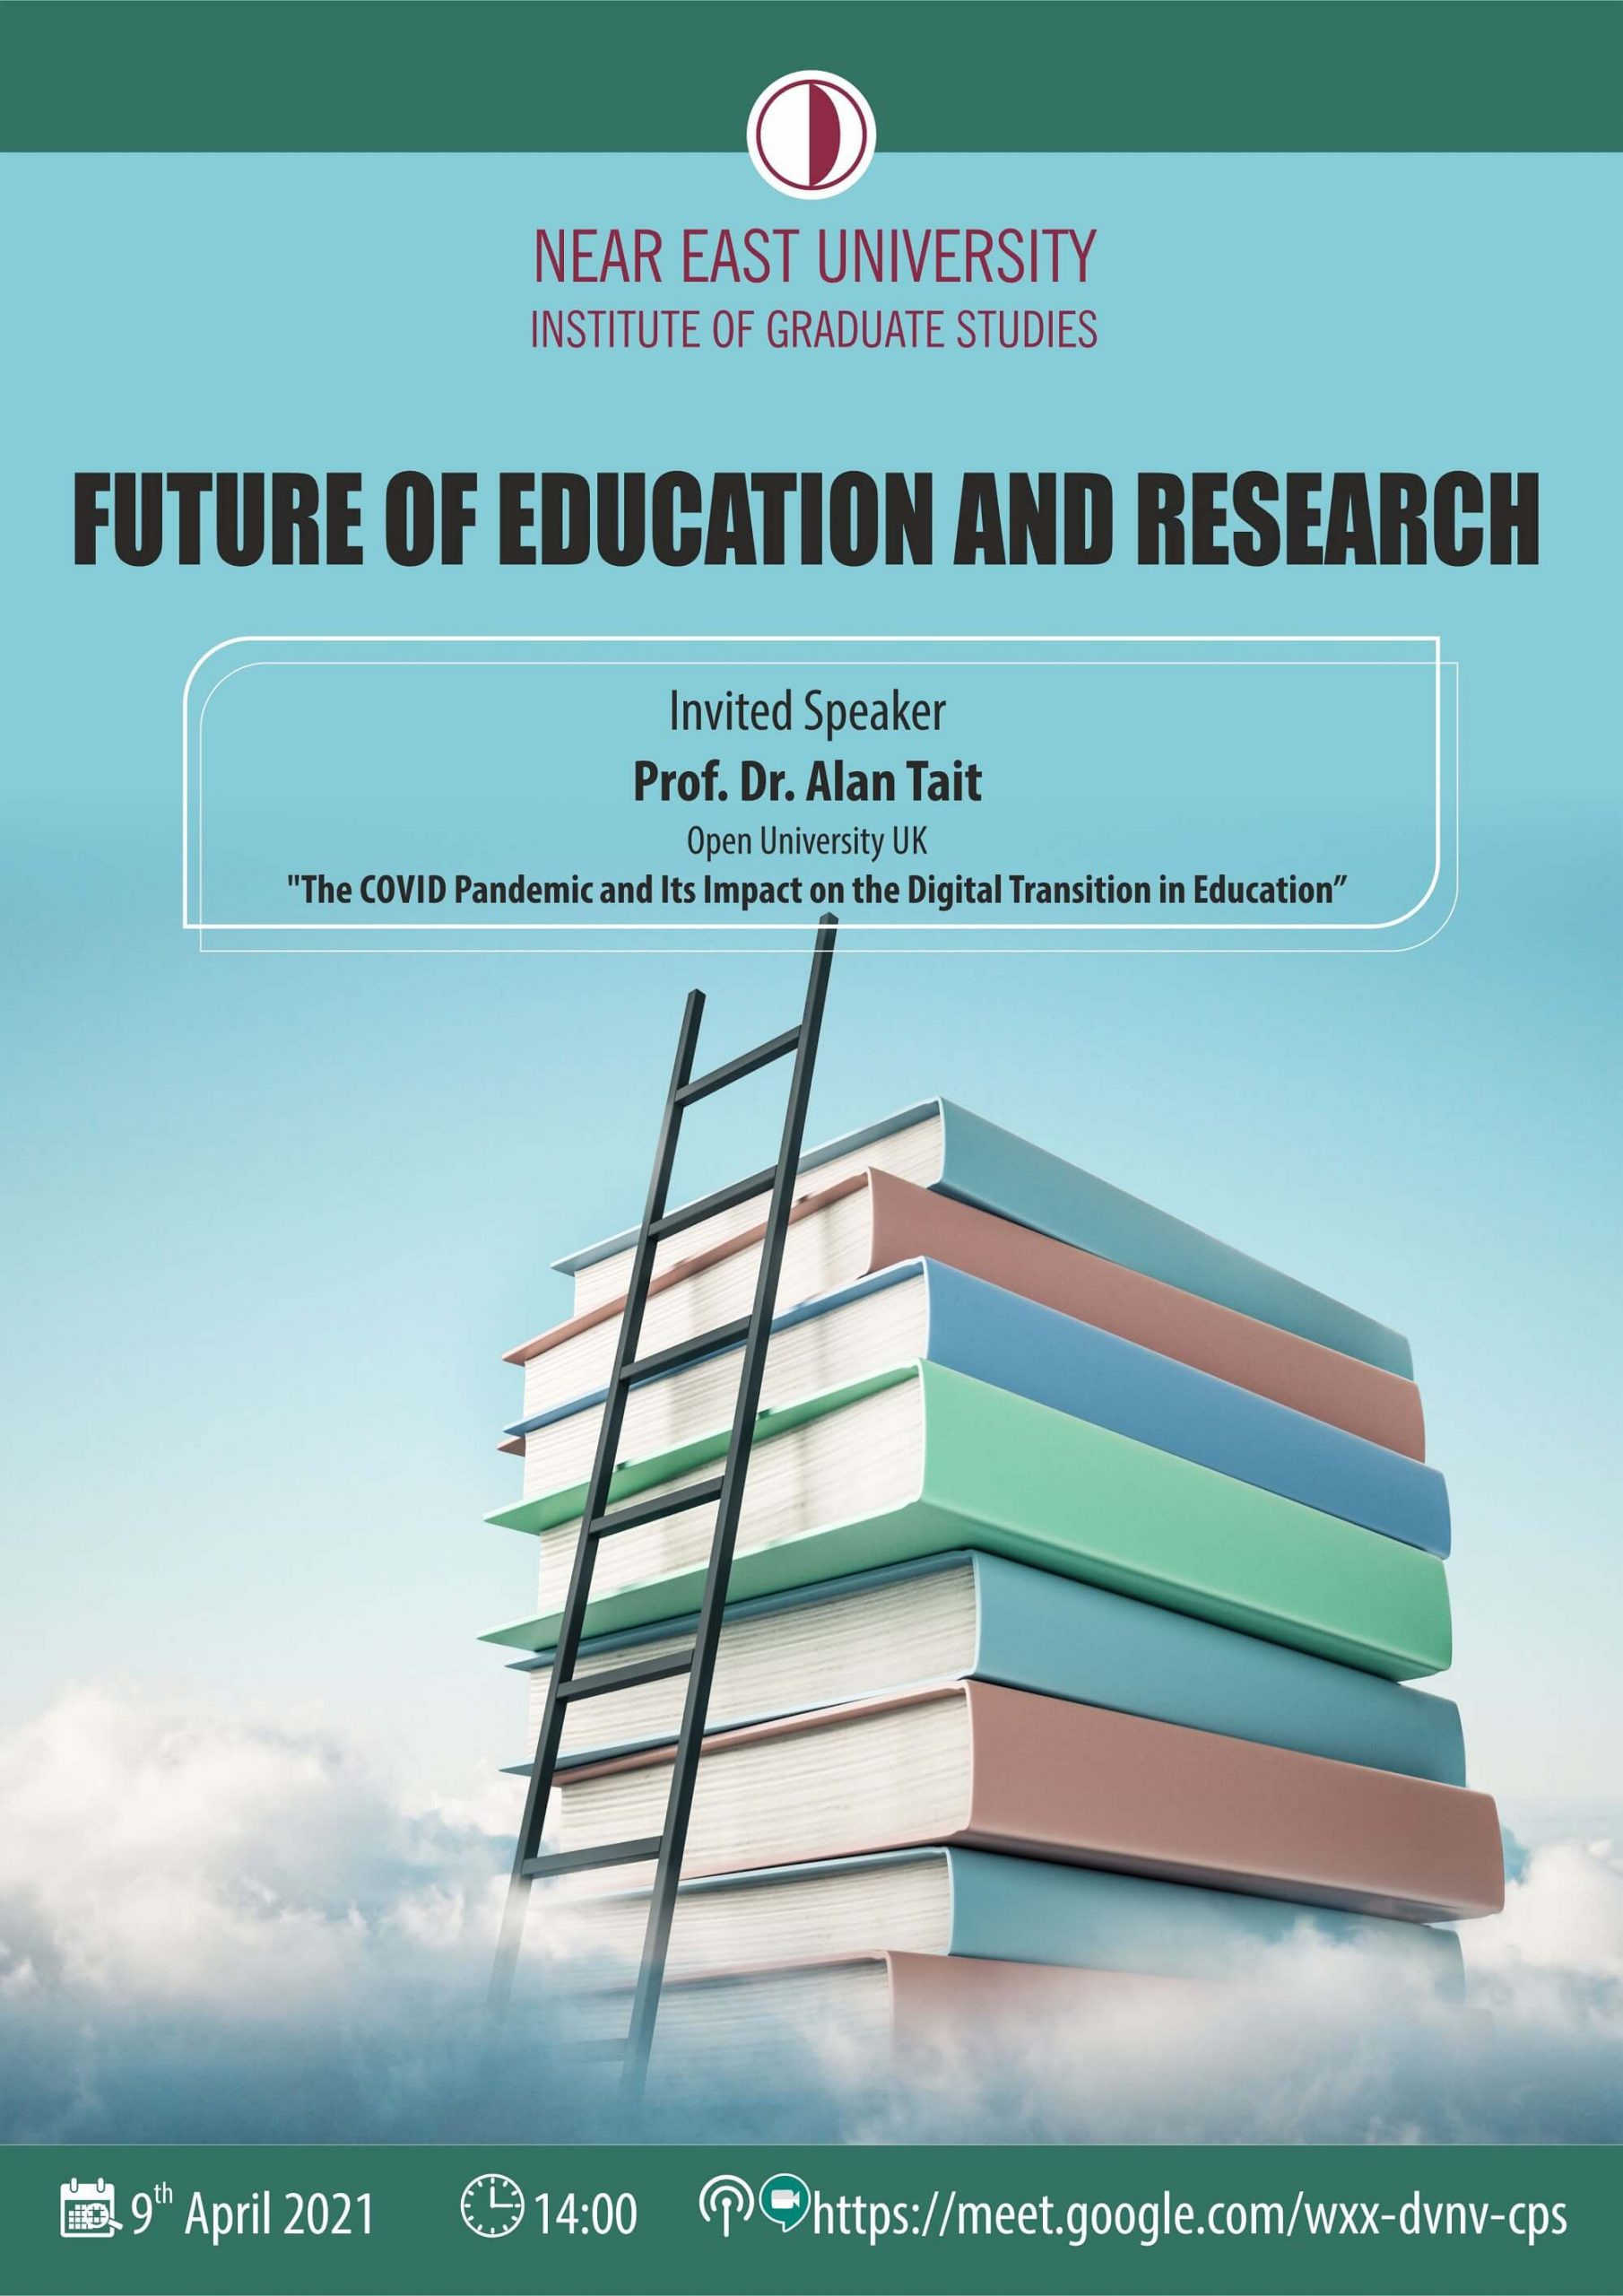 Future of Education and Research